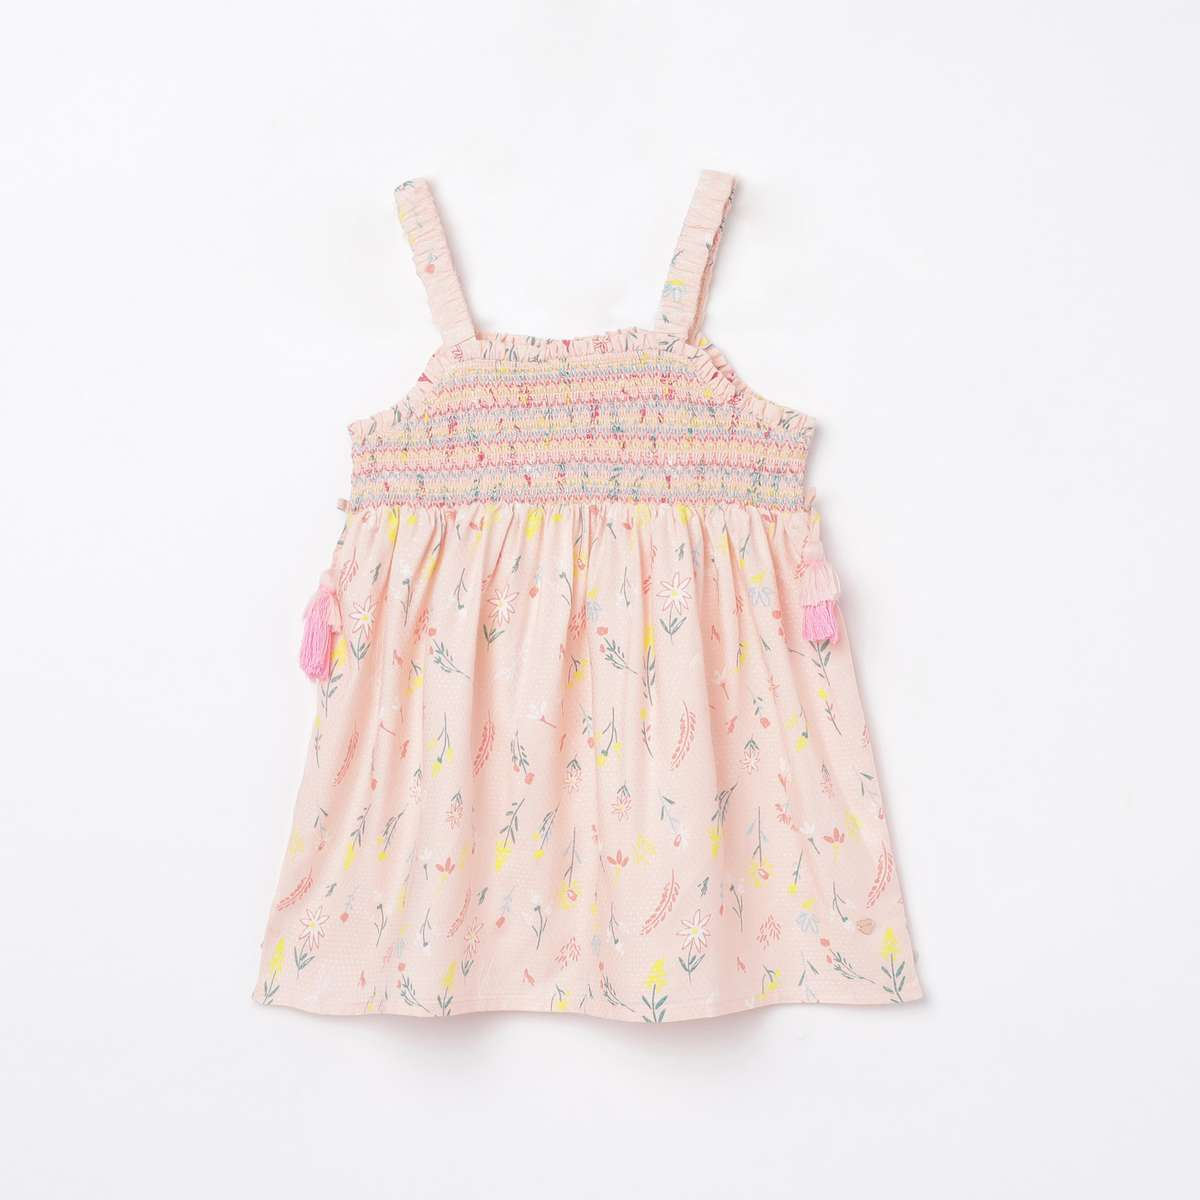 BOSSINI Girls Printed Sleeveless Top with Smocked Detail